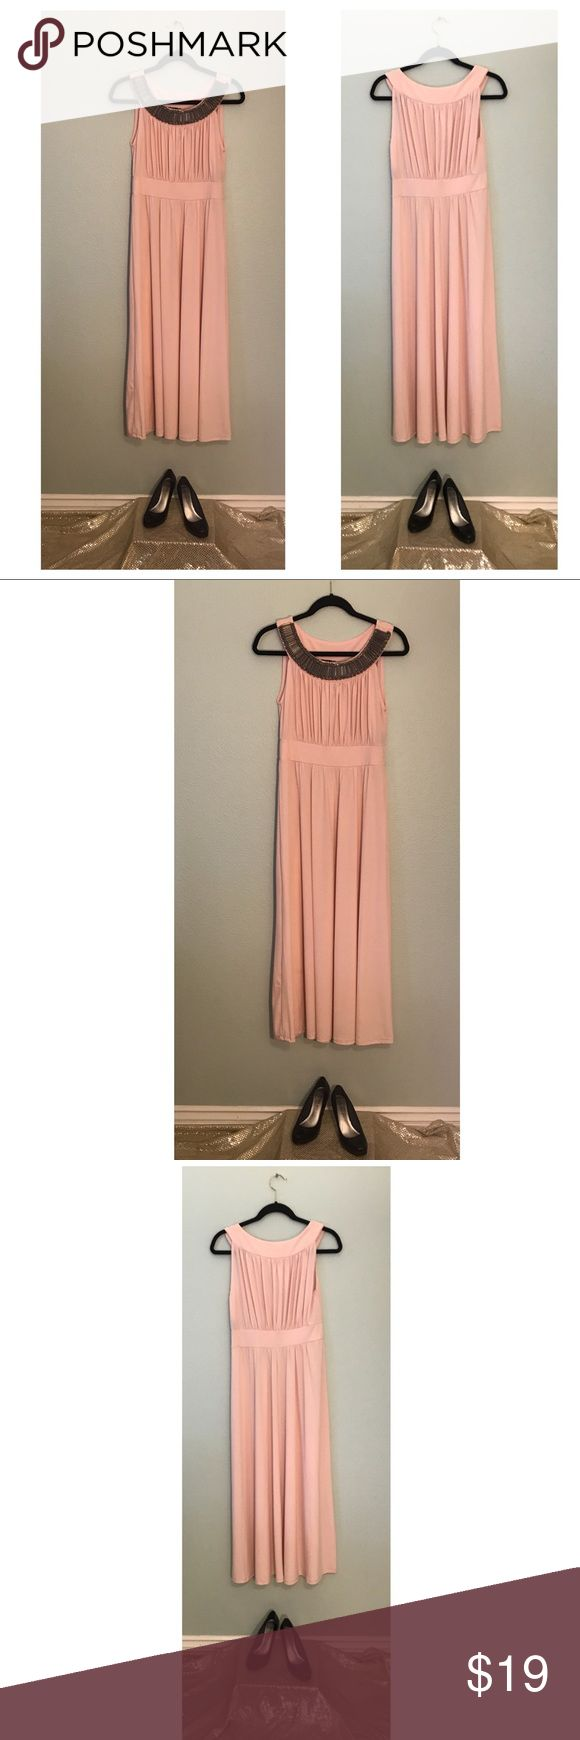 """NWT HAANI Light Pink Slip On Flowy Maxi Dress NWT. Beautiful and Slimming HAANI Light Pink Embellished neck fitted waist Flowy formal or casual maxi dress. Length is about 52"""" from top of shoulder to bottom of dress. Bust is about 16"""" wide from side to side. Waist is about 14"""" wide laying flat measured from side to side. Shoes are not included but may be available in my closet, they are Madden Girl size 7. FAST SHIPPING, top rated seller, bundle for the best deals! HAANI Dresses Maxi"""